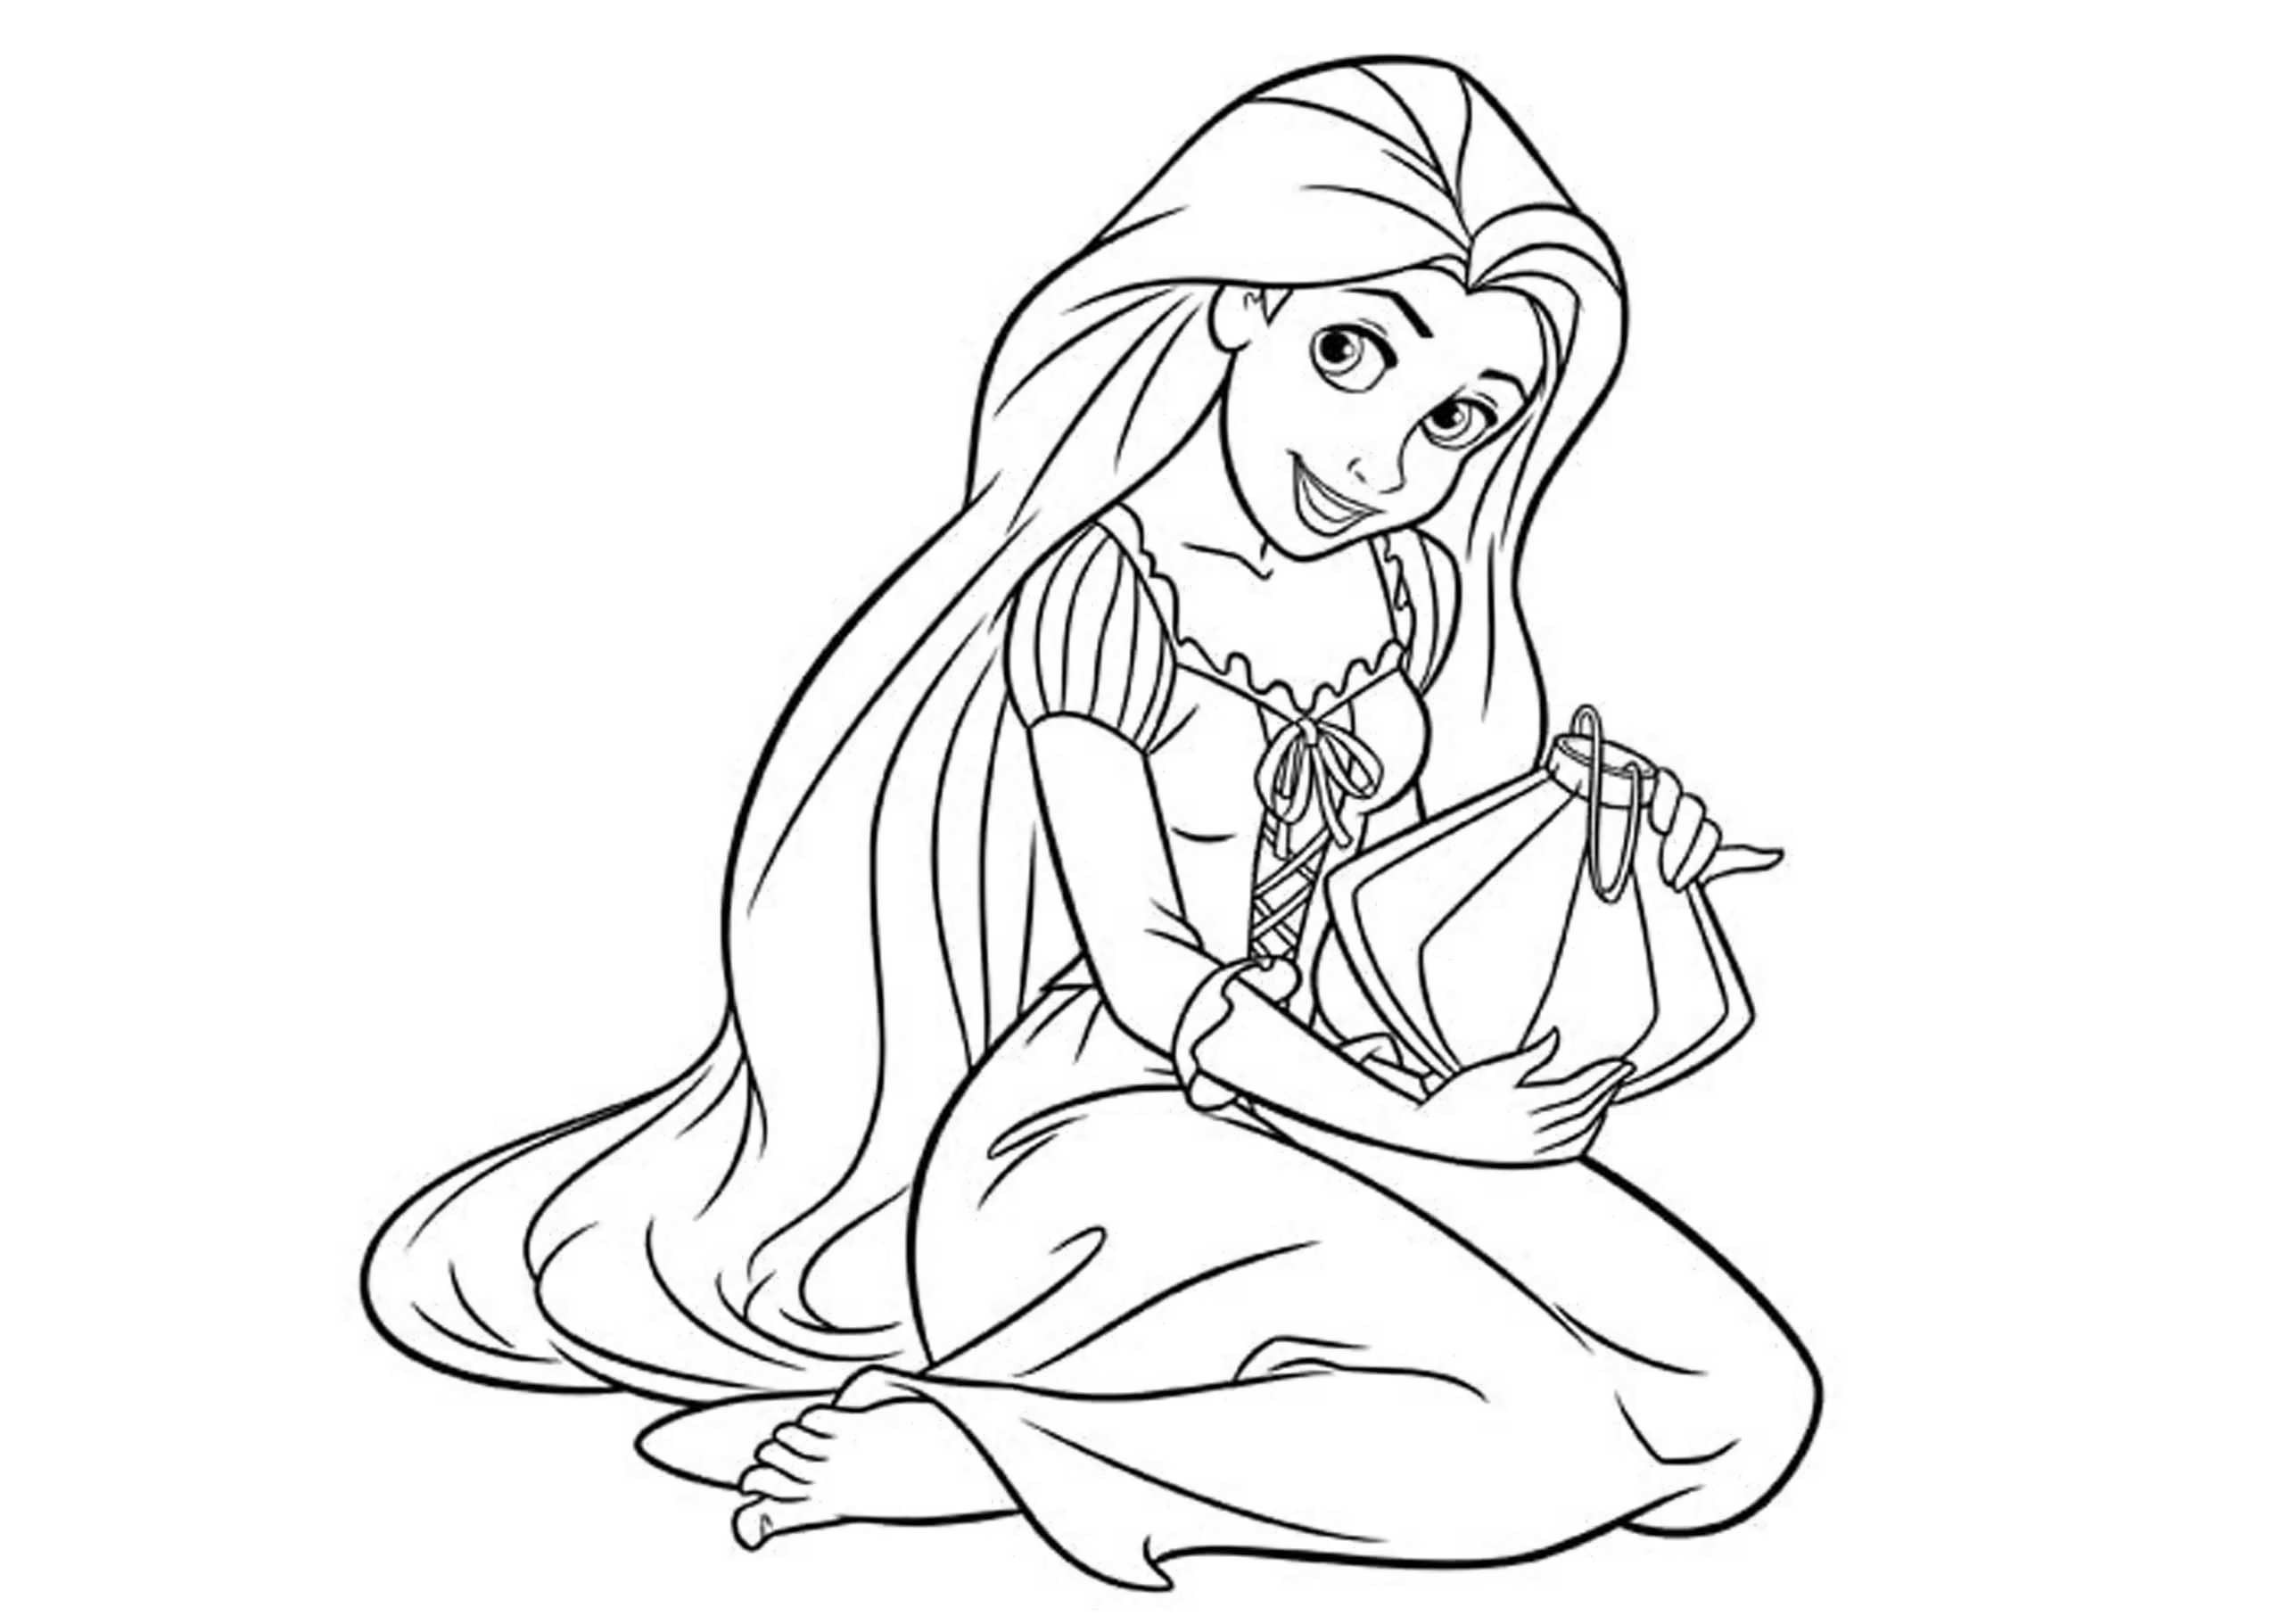 Princess Coloring Book Pages Valid Disney Princess Coloring Pages Games Fresh Di Disney Princess Coloring Pages Rapunzel Coloring Pages Princess Coloring Pages